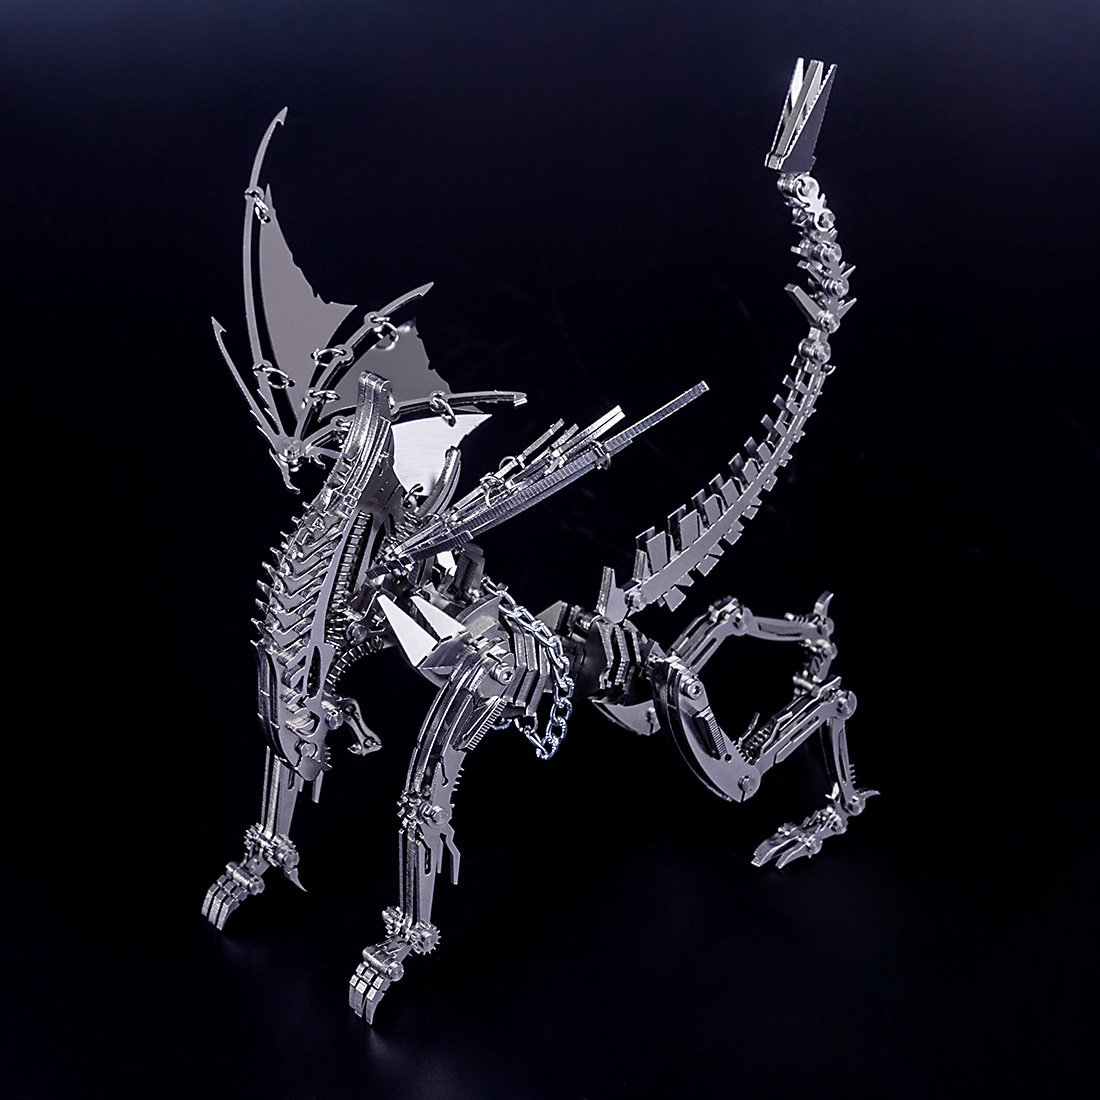 3D DIY Metal Puzzle Winged Beast Metal Model Kit-Difficulty level: ⭐⭐⭐⭐⭐⭐